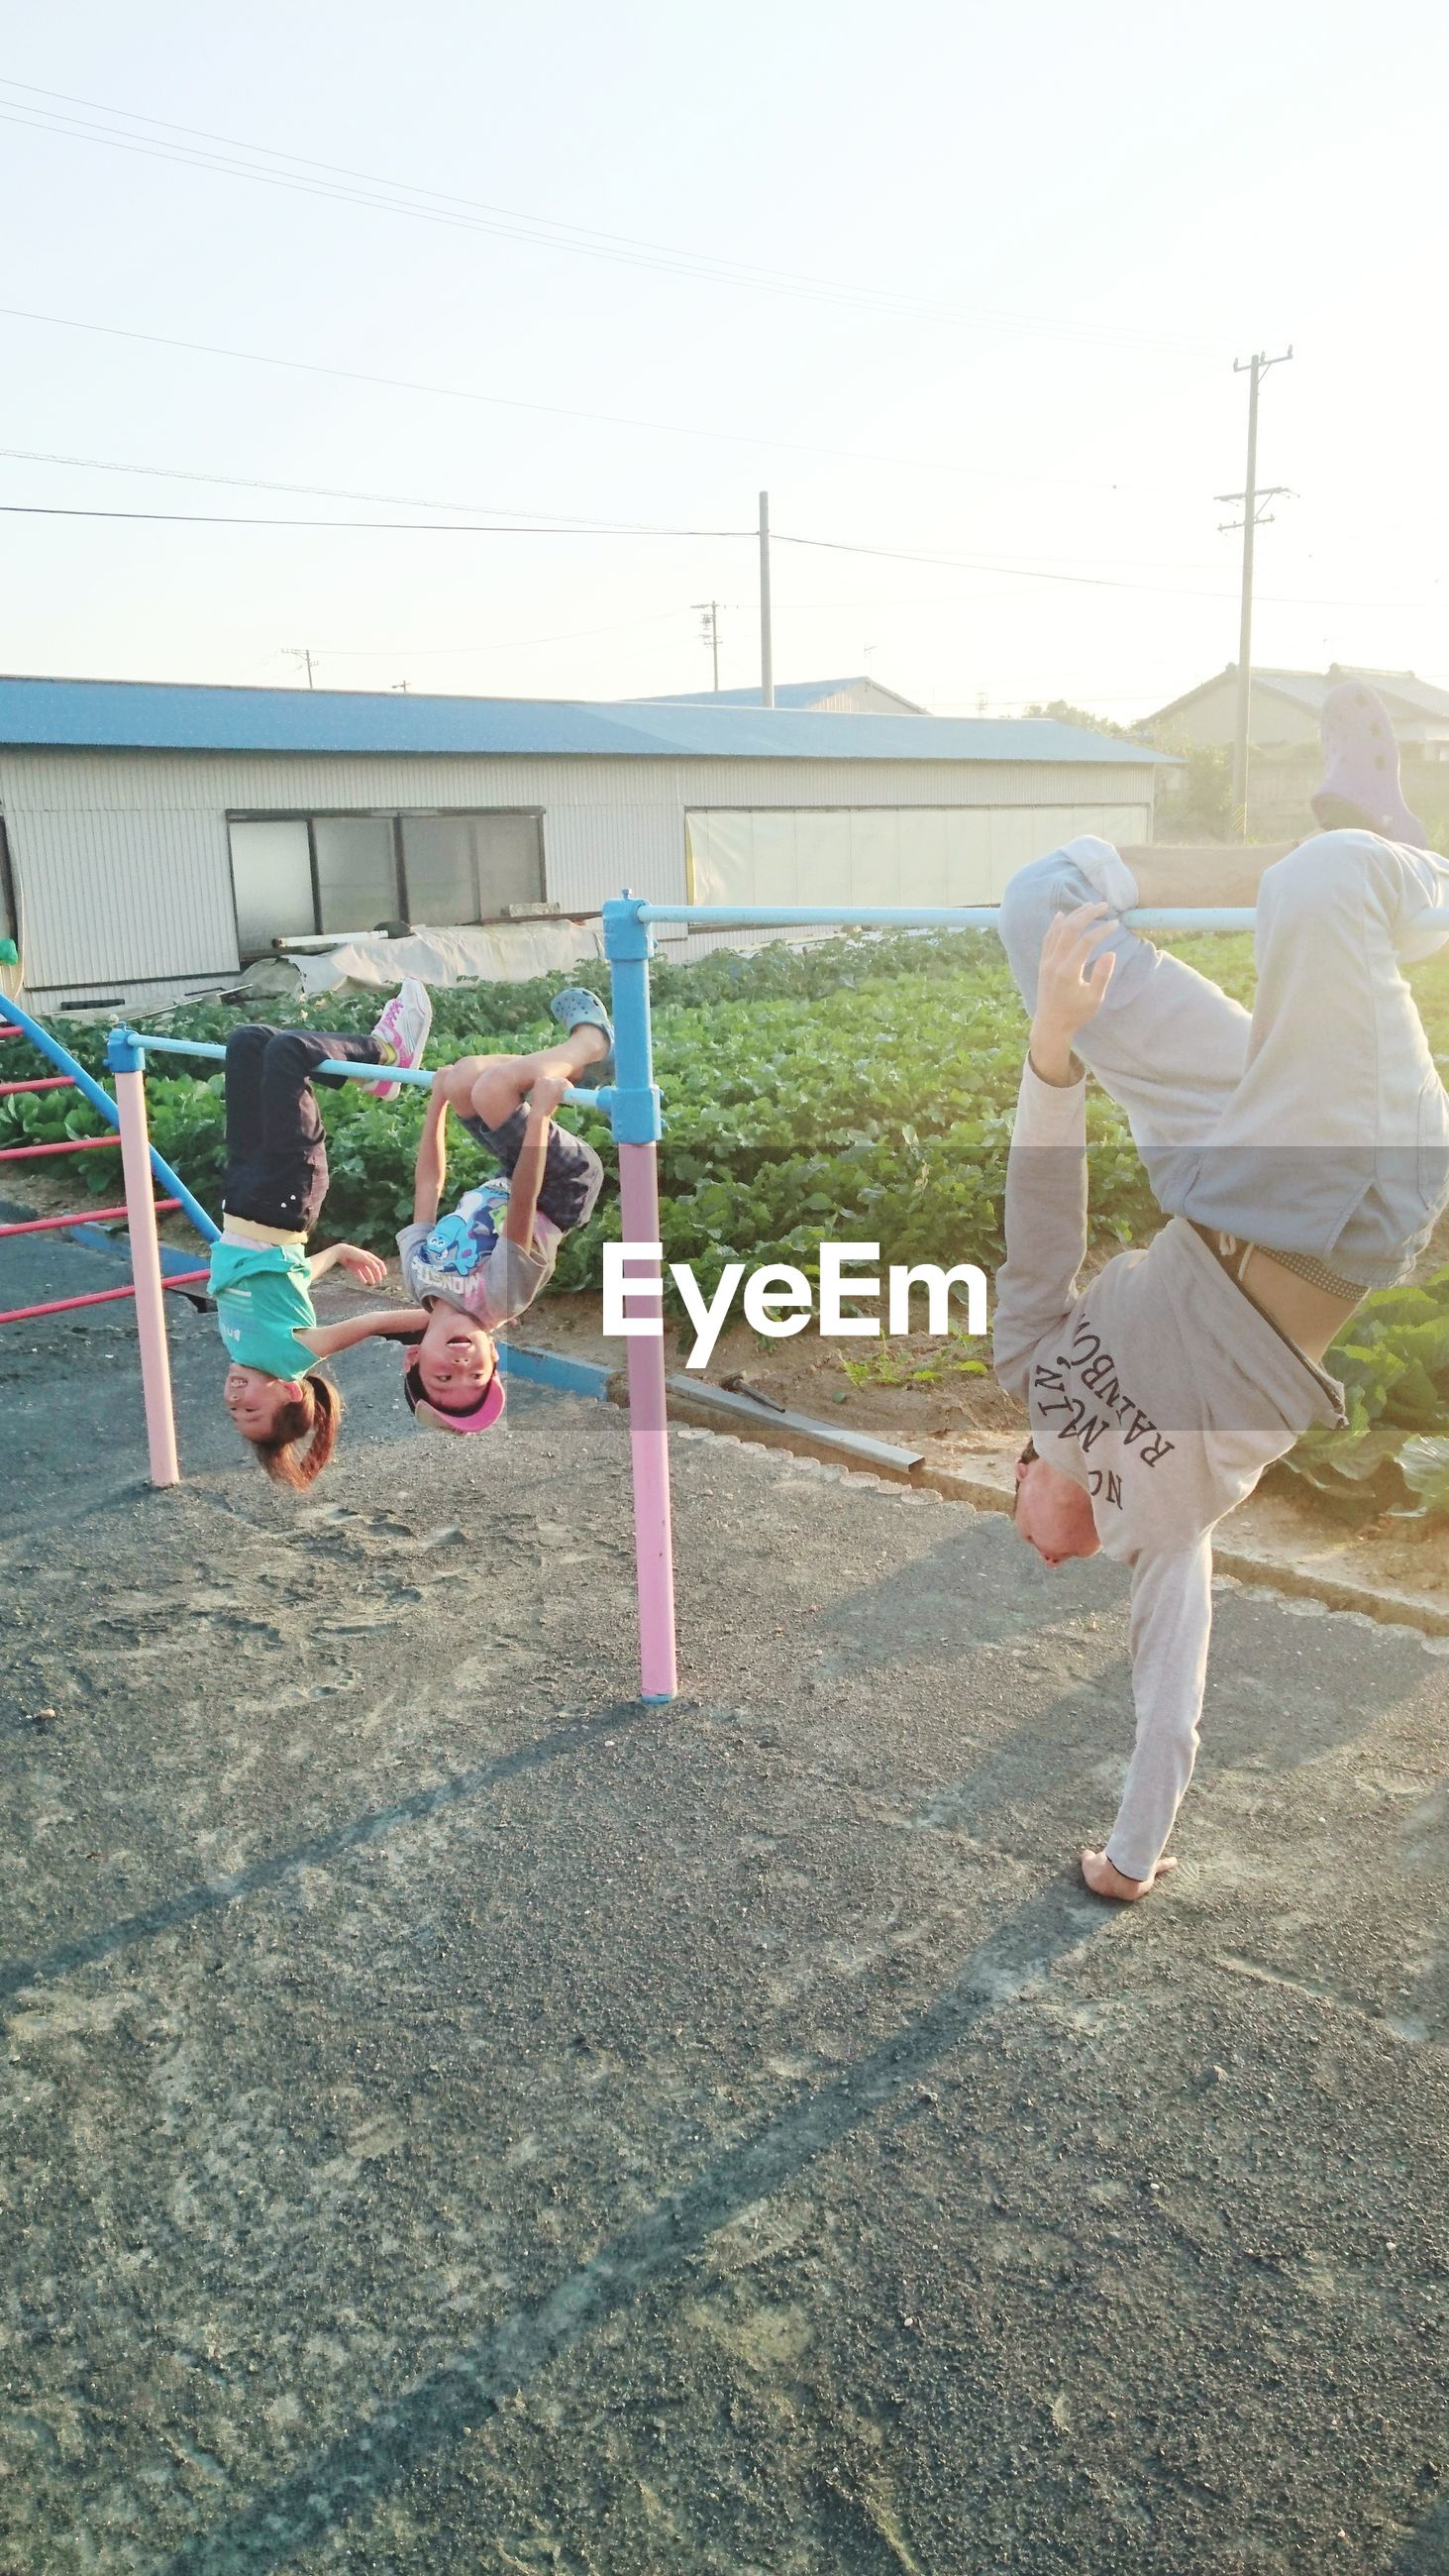 full length, lifestyles, leisure activity, real people, girls, females, men, day, women, childhood, child, group of people, people, exercising, nature, enjoyment, togetherness, sky, playground, outdoors